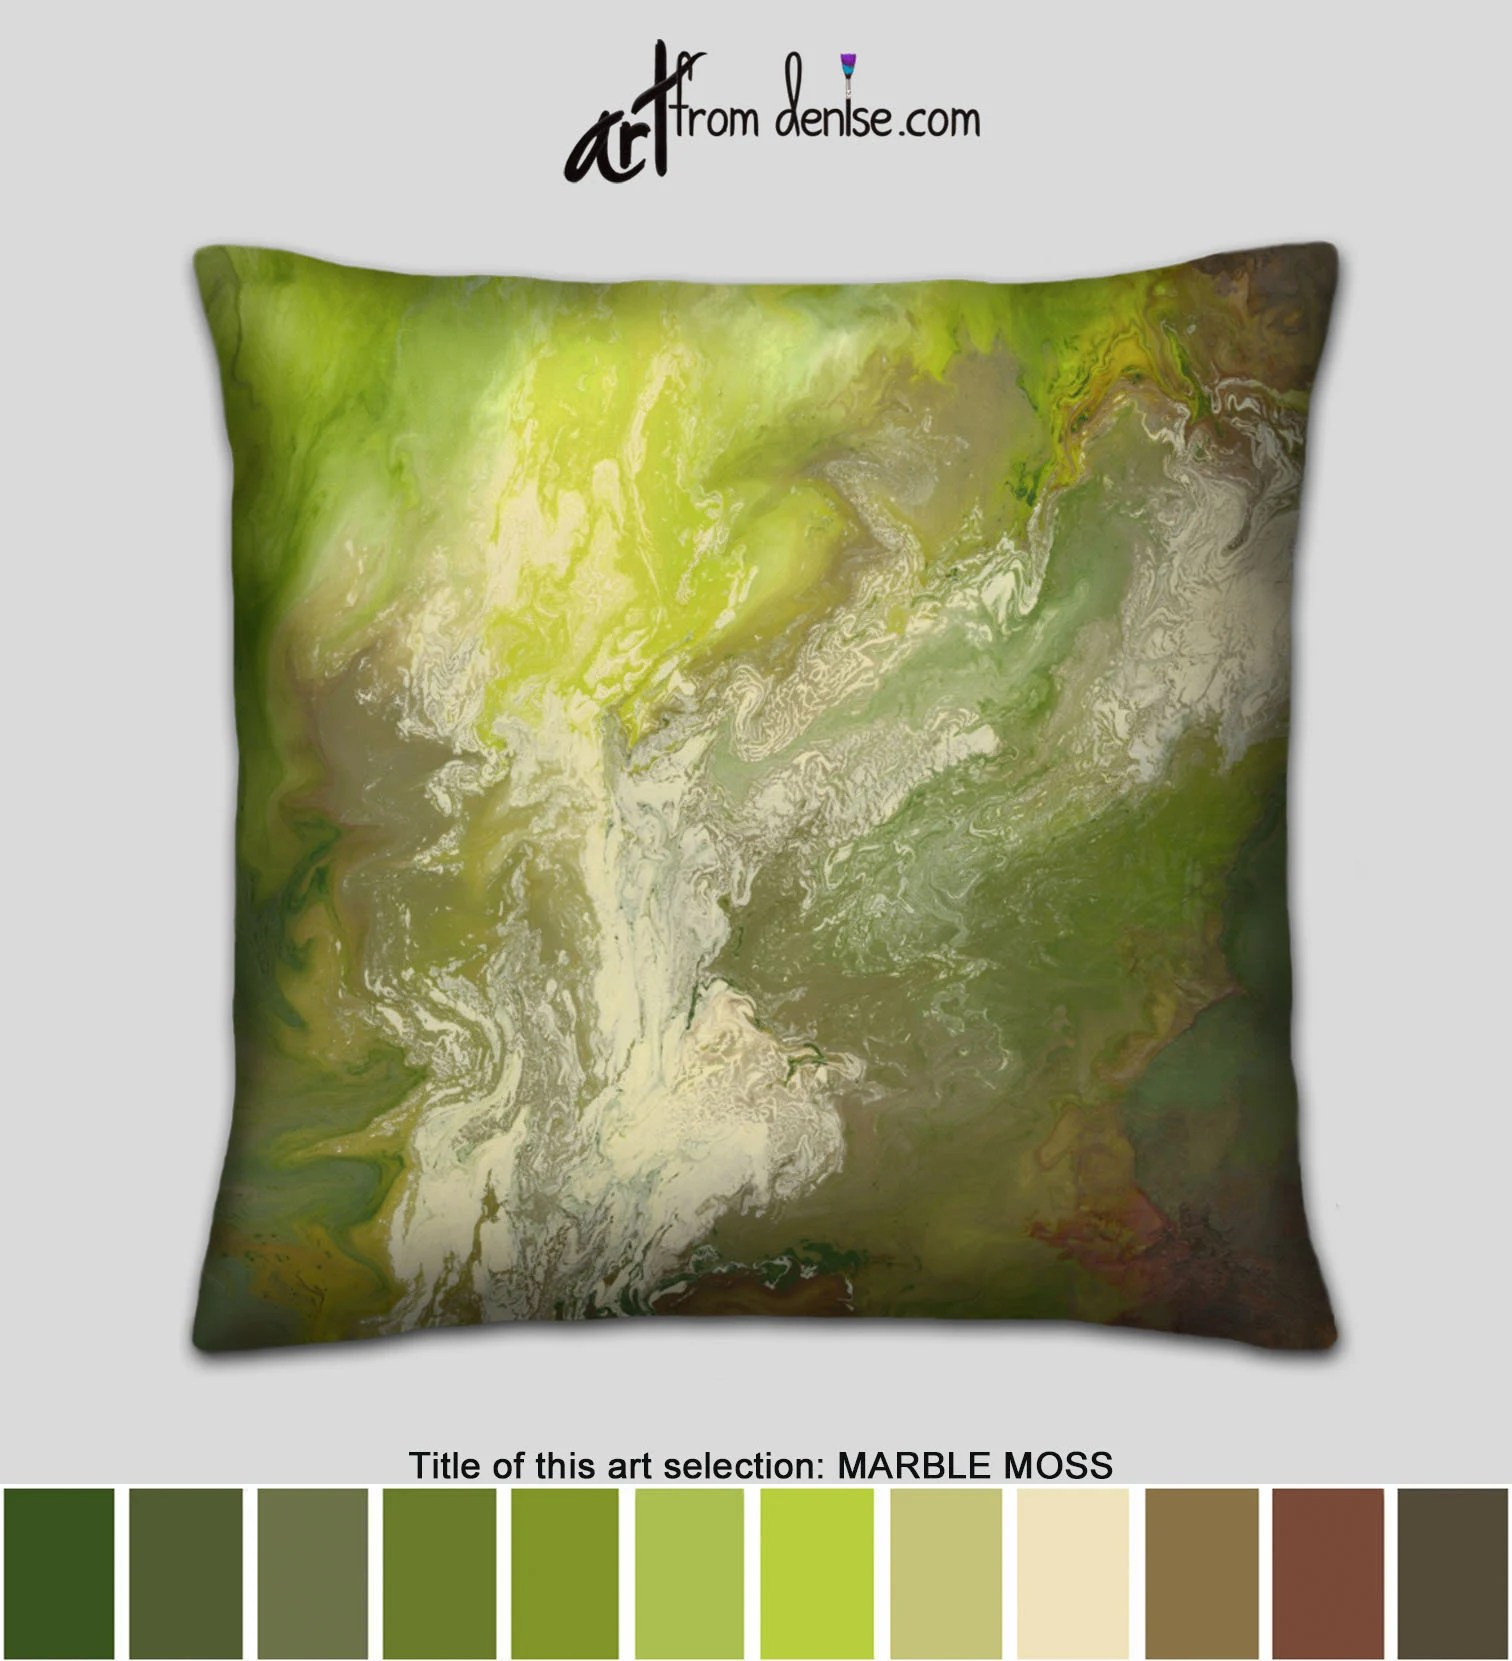 brown olive lime green and chartreuse throw pillow for bed decor designer couch pillows set large outdoor sofa cushion